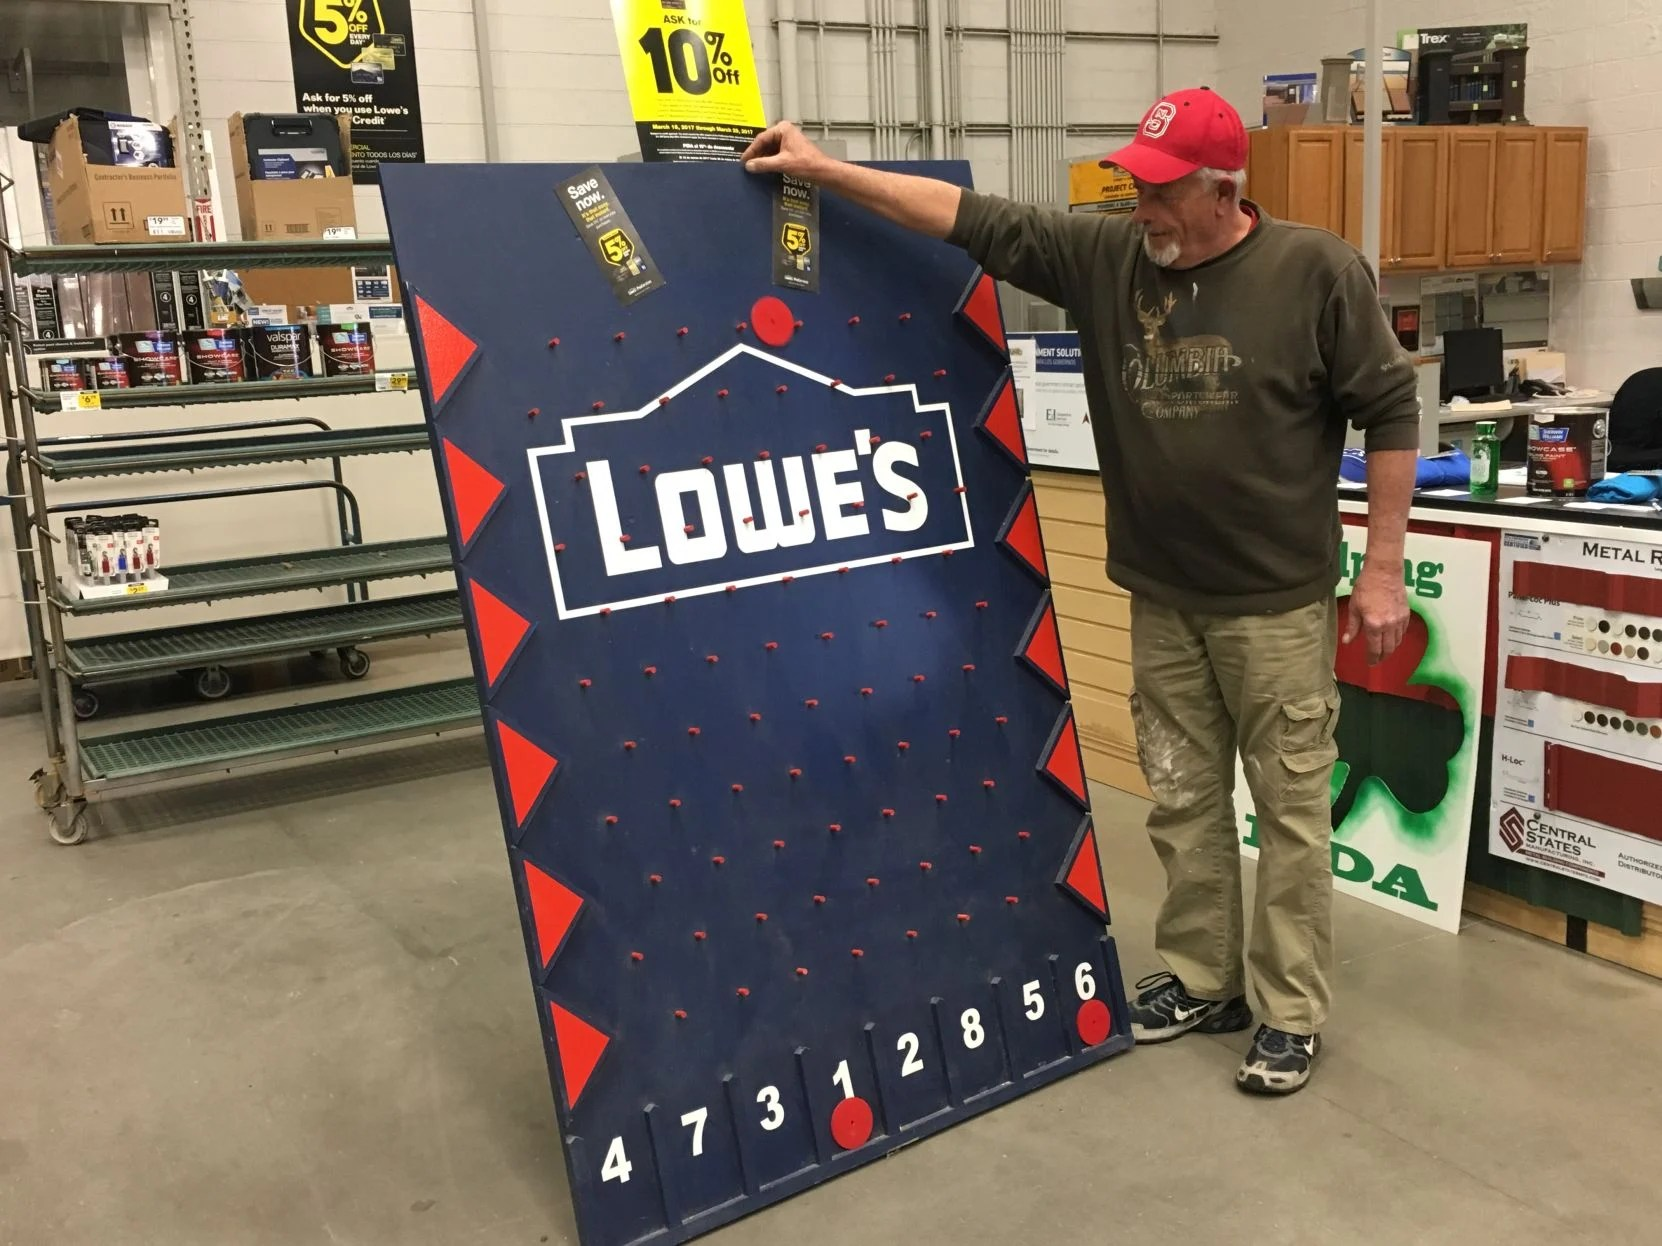 Assorted Muscular Dystrophy Association Lowes Tractor Henderson Tx Lowes Henderson Texas Jobs Of Reidsville Mda Plinko Reidsville Draises houzz-03 Lowes Henderson Tx